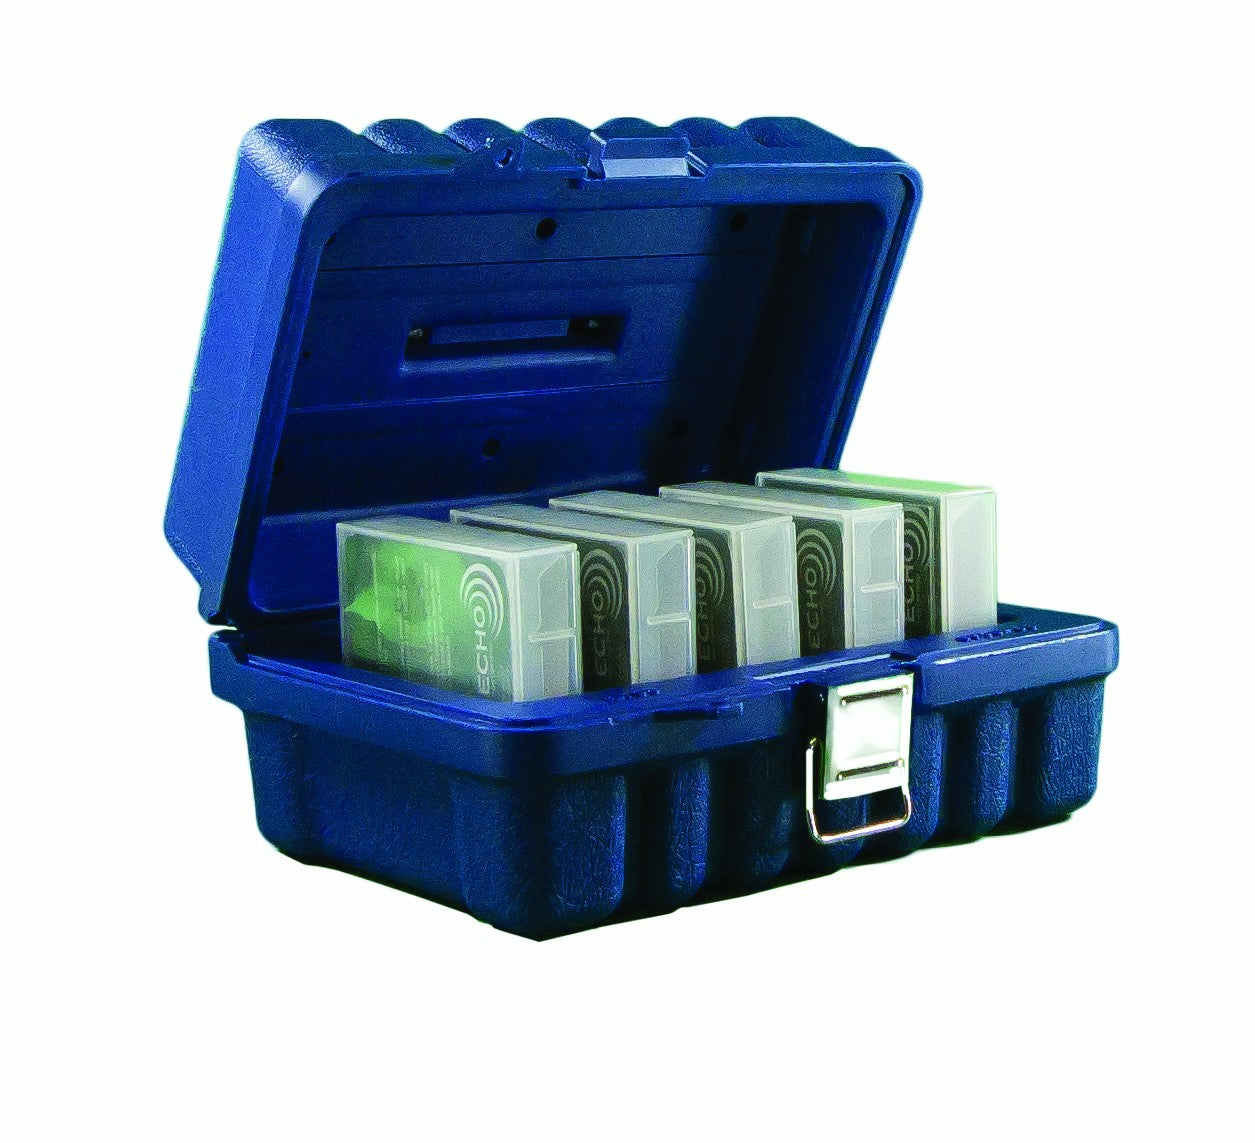 Blue plastic case holding 5 LTO cartridges in their plastic jewel cases